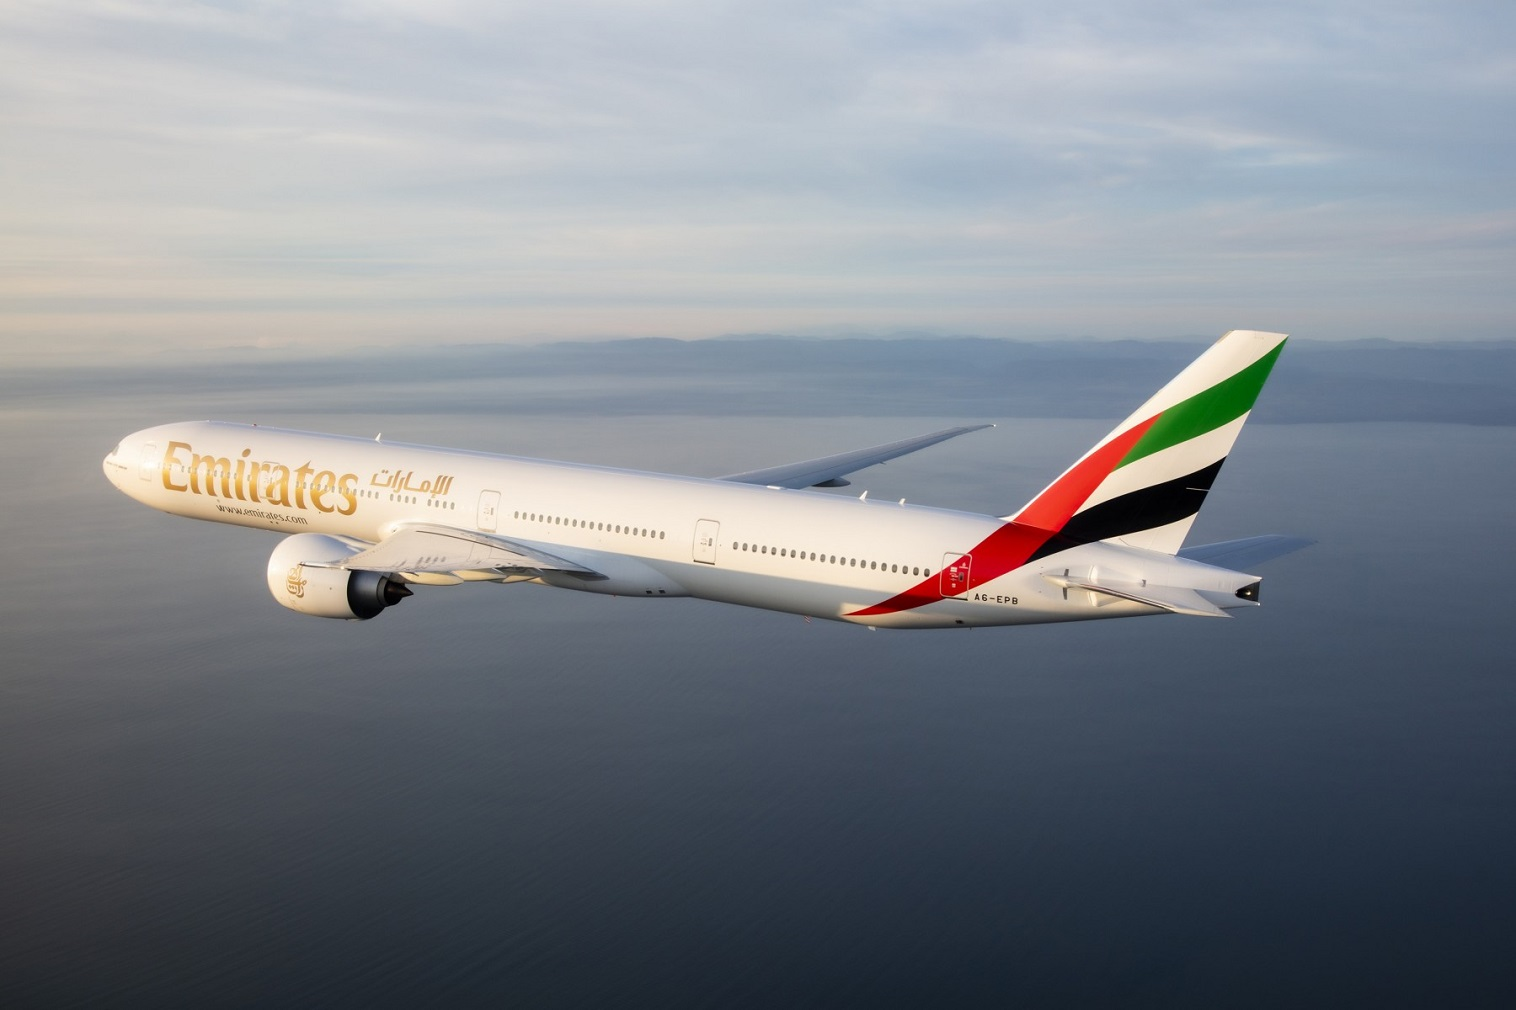 In addition, Emirates will add flights to the following cities in July: London Heathrow, Manchester, Frankfurt, Paris, Zurich, Madrid, Amsterdam, Copenhagen, Dublin, New York JFK, Toronto, Kuala Lumpur, Singapore and Hong Kong.